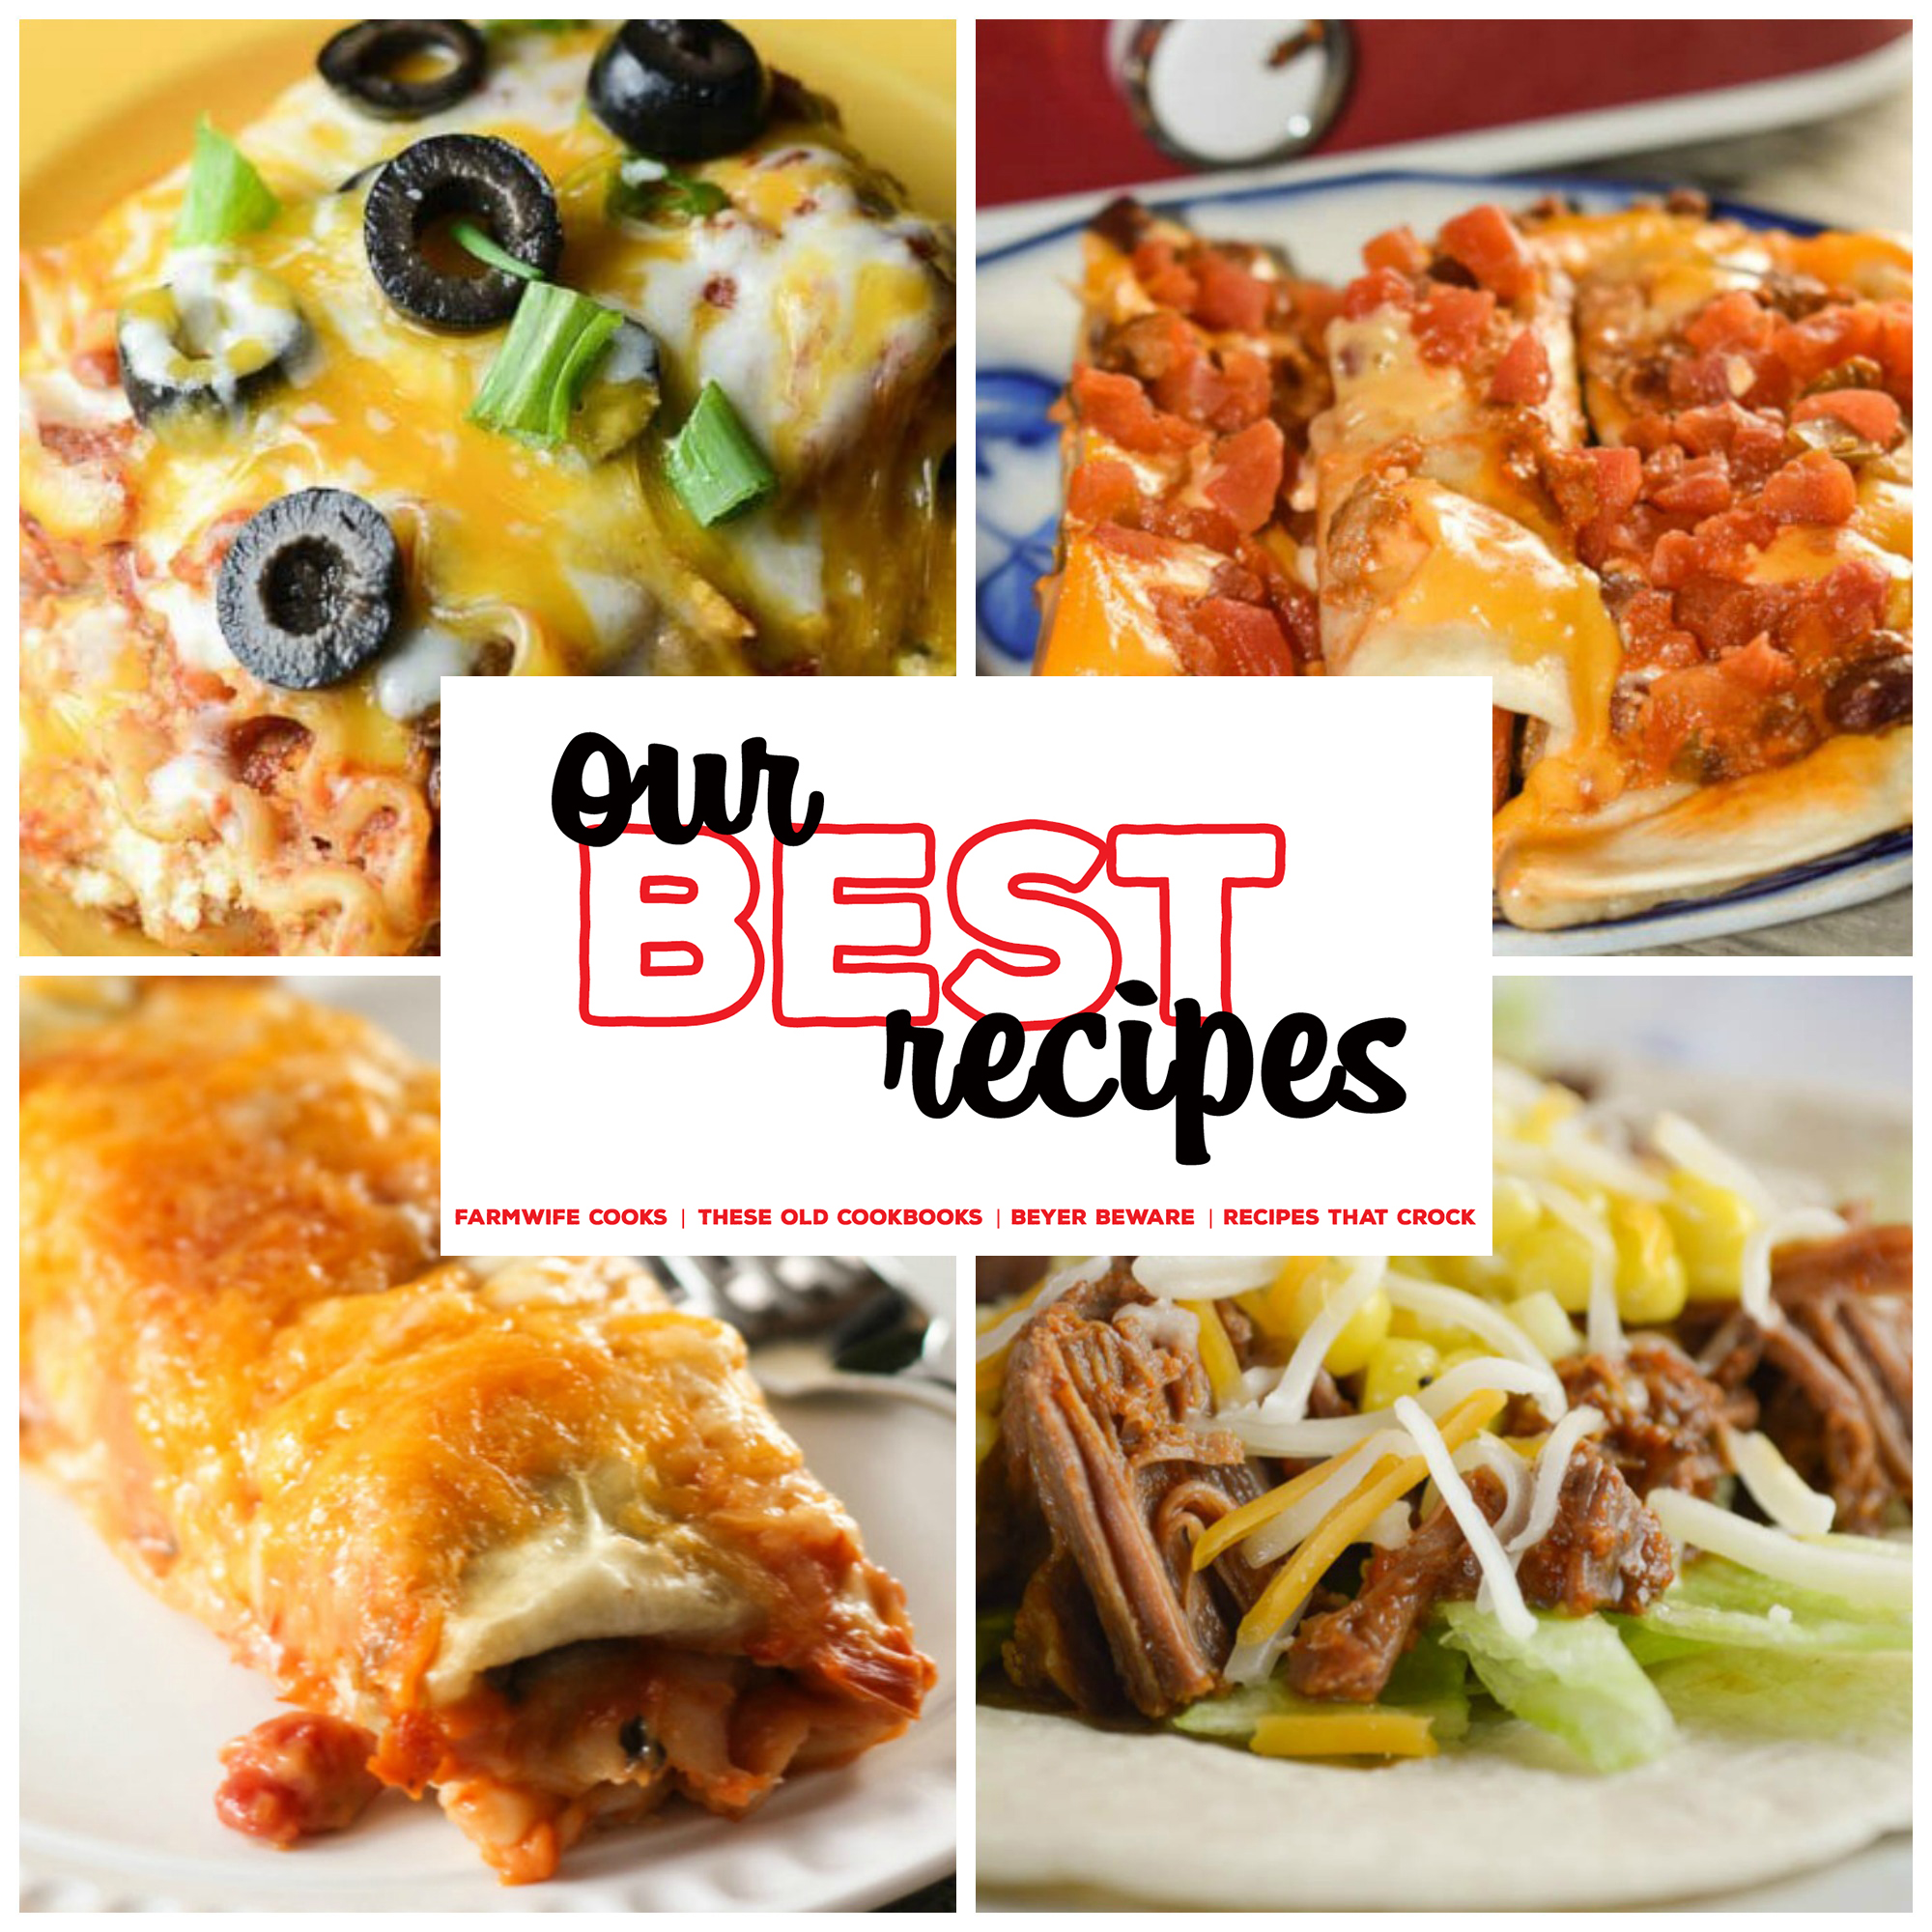 Are you looking for great Mexican-inspired recipes? Our Best Recipes Series continues with dishes likeBurrito Style Beef Enchiladas, Crock Pot Low-Carb Chicken Tortilla Soup,Crock Pot Mexican-Inspired Lasagna, Taco Bake,Crock Pot Low-Carb Taco Soup, Crock Pot Ground Beef Acapulco Enchiladas,Crock Pot Tex Mex Chicken Tacos andElectric Pressure Cooker Taco Beef.